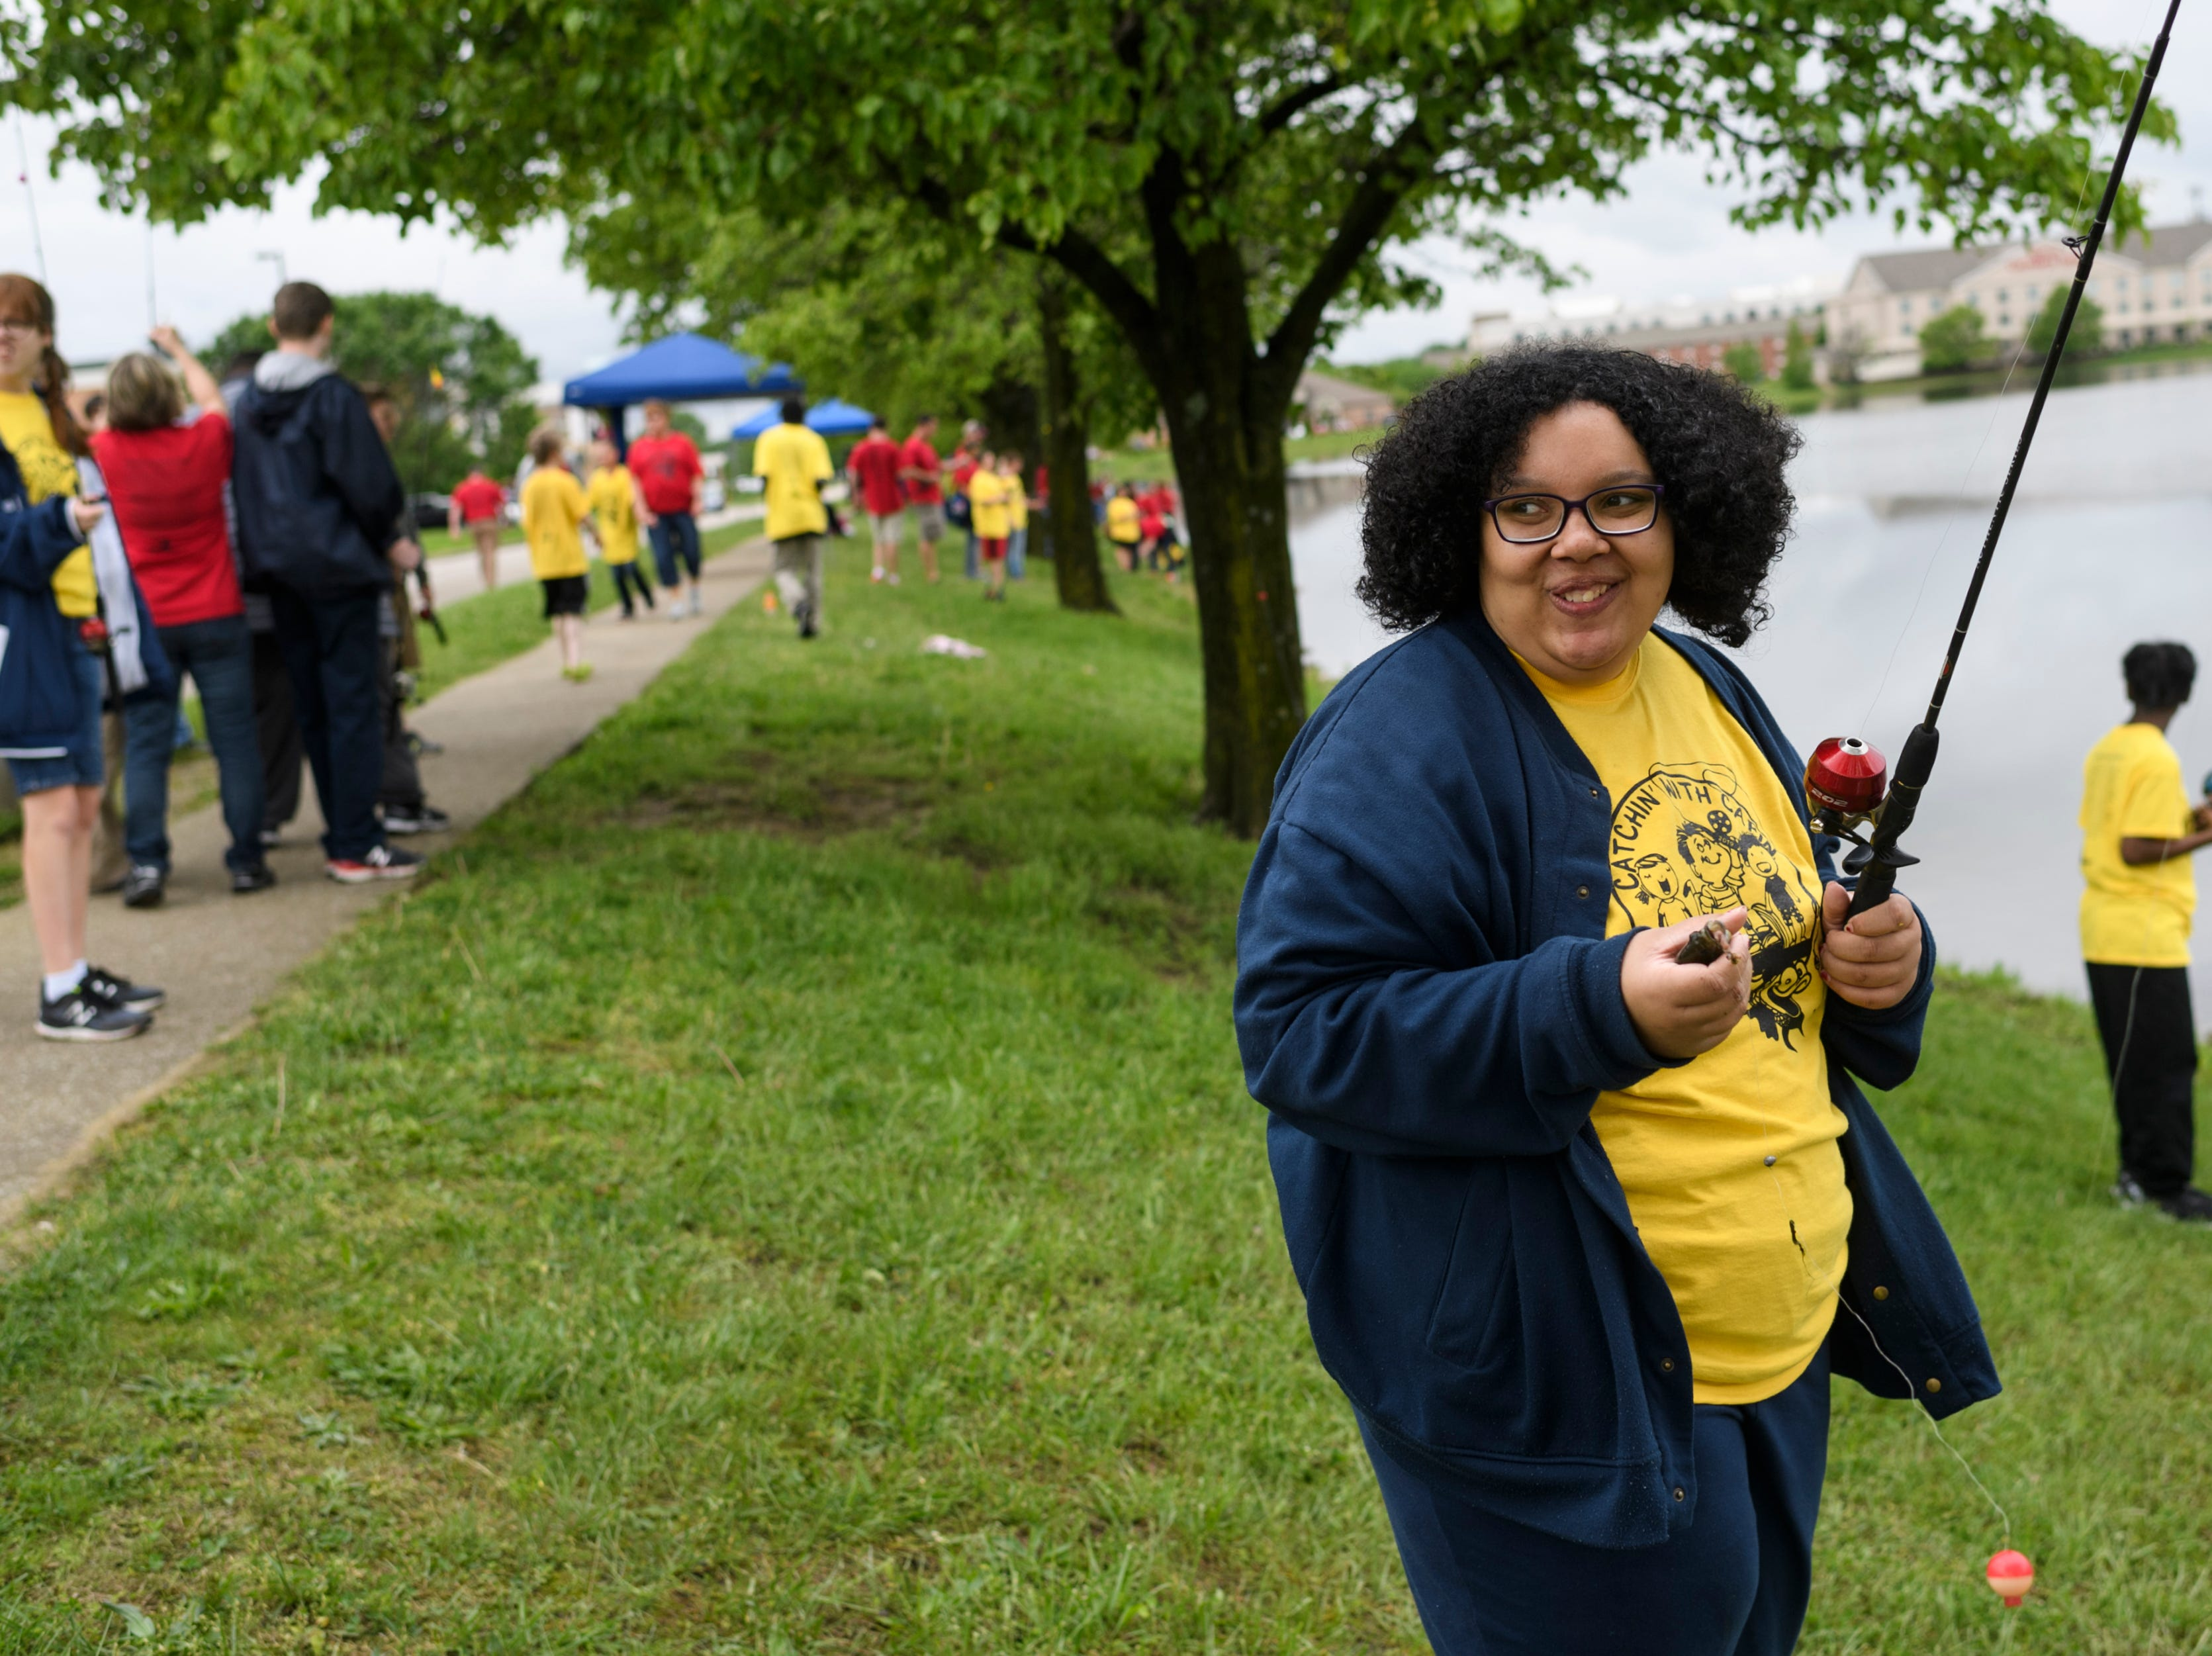 """Summer Combs, a Bosse High School student, smiles while holding a Bluegill fish she caught during the 12th annual """"Catchin' with Capin"""" event at Eagle Lake in Evansville, Ind., Friday, May 3, 2019."""